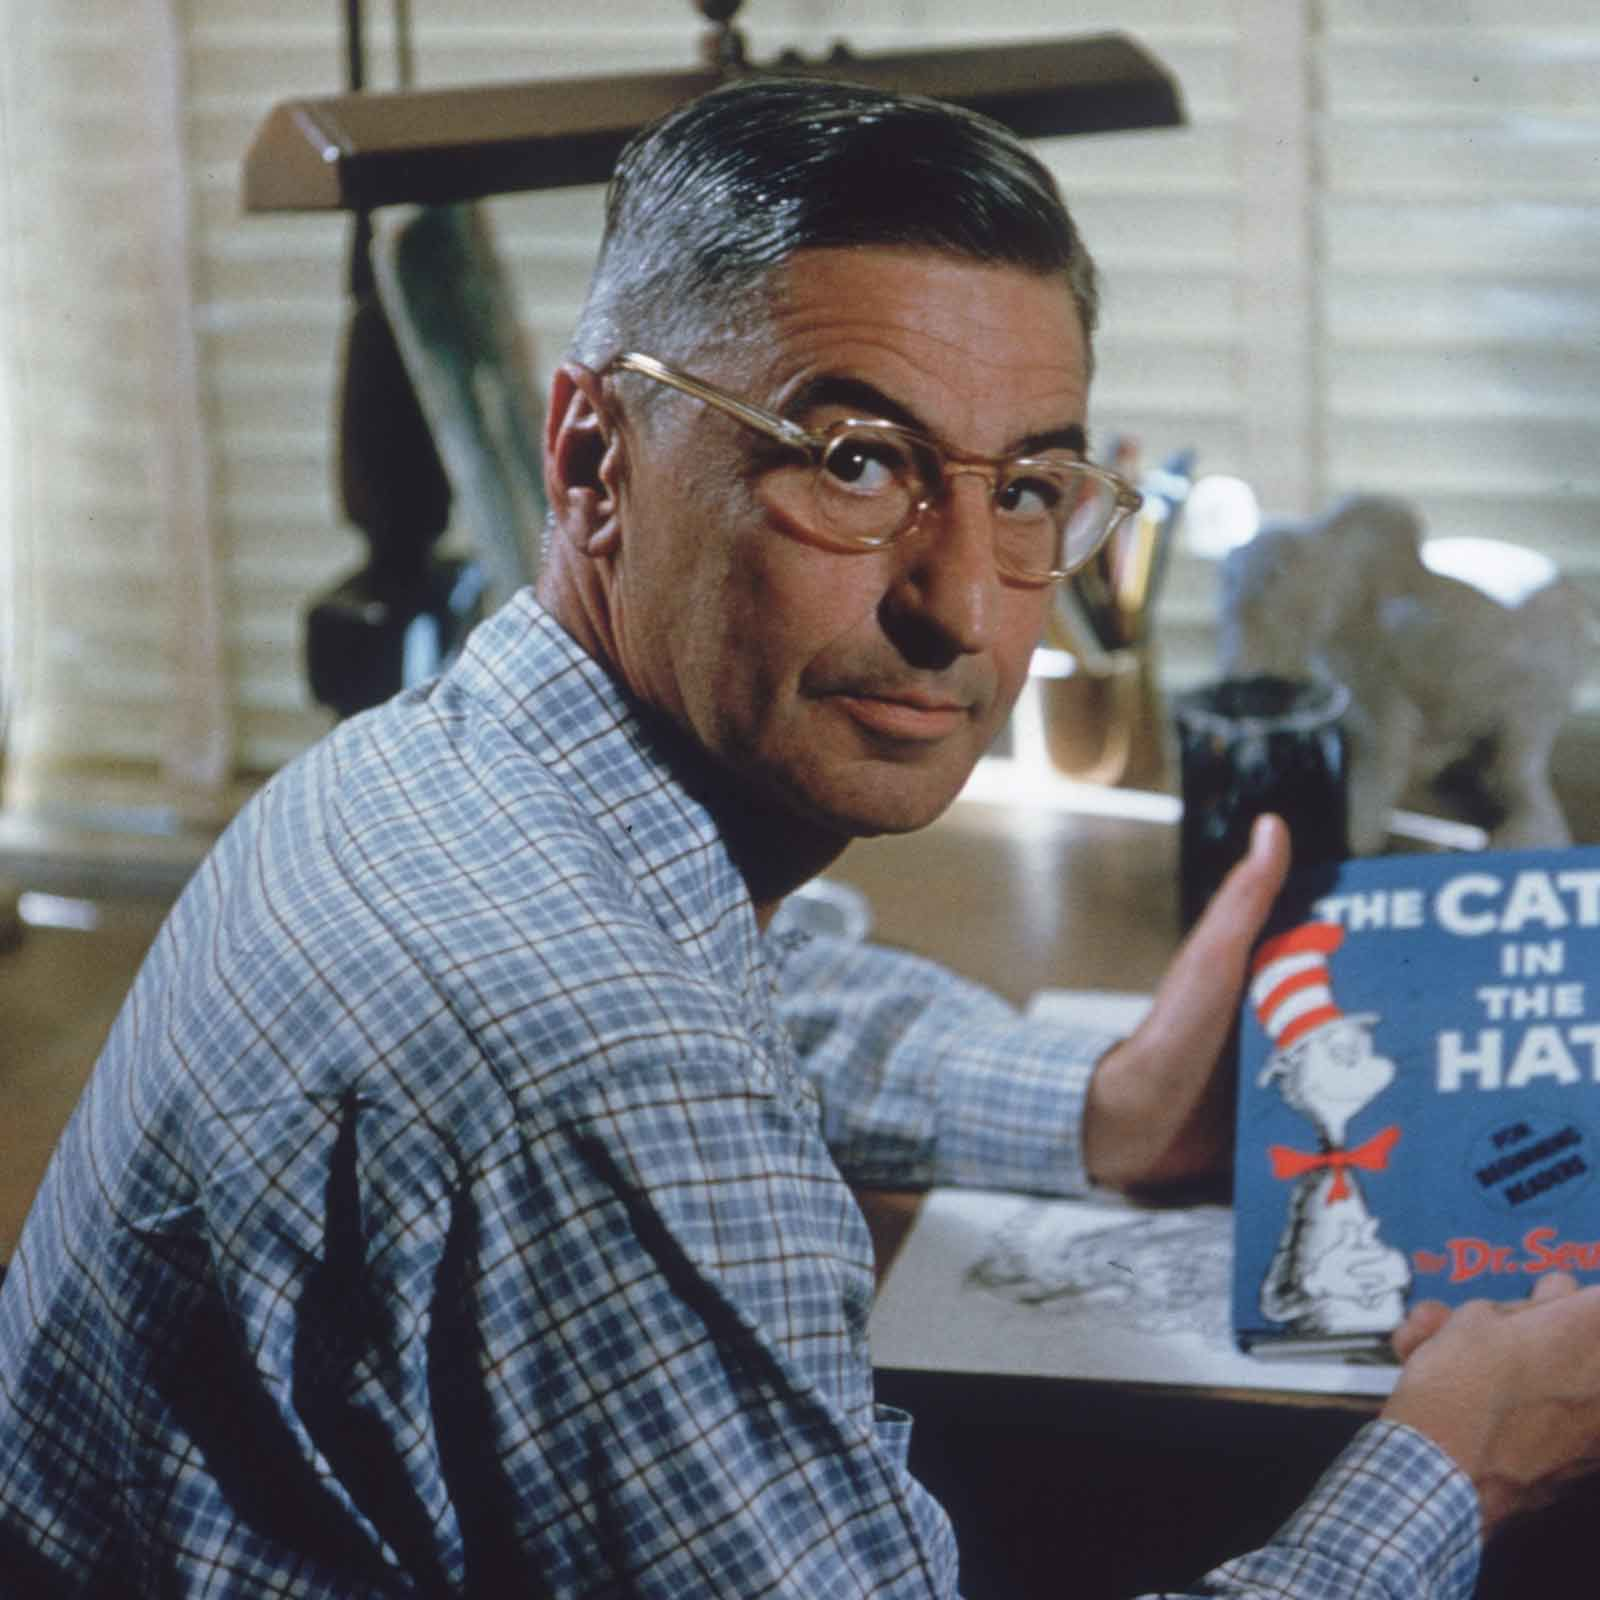 Biography Of Dr Seuss Popular Children S Author